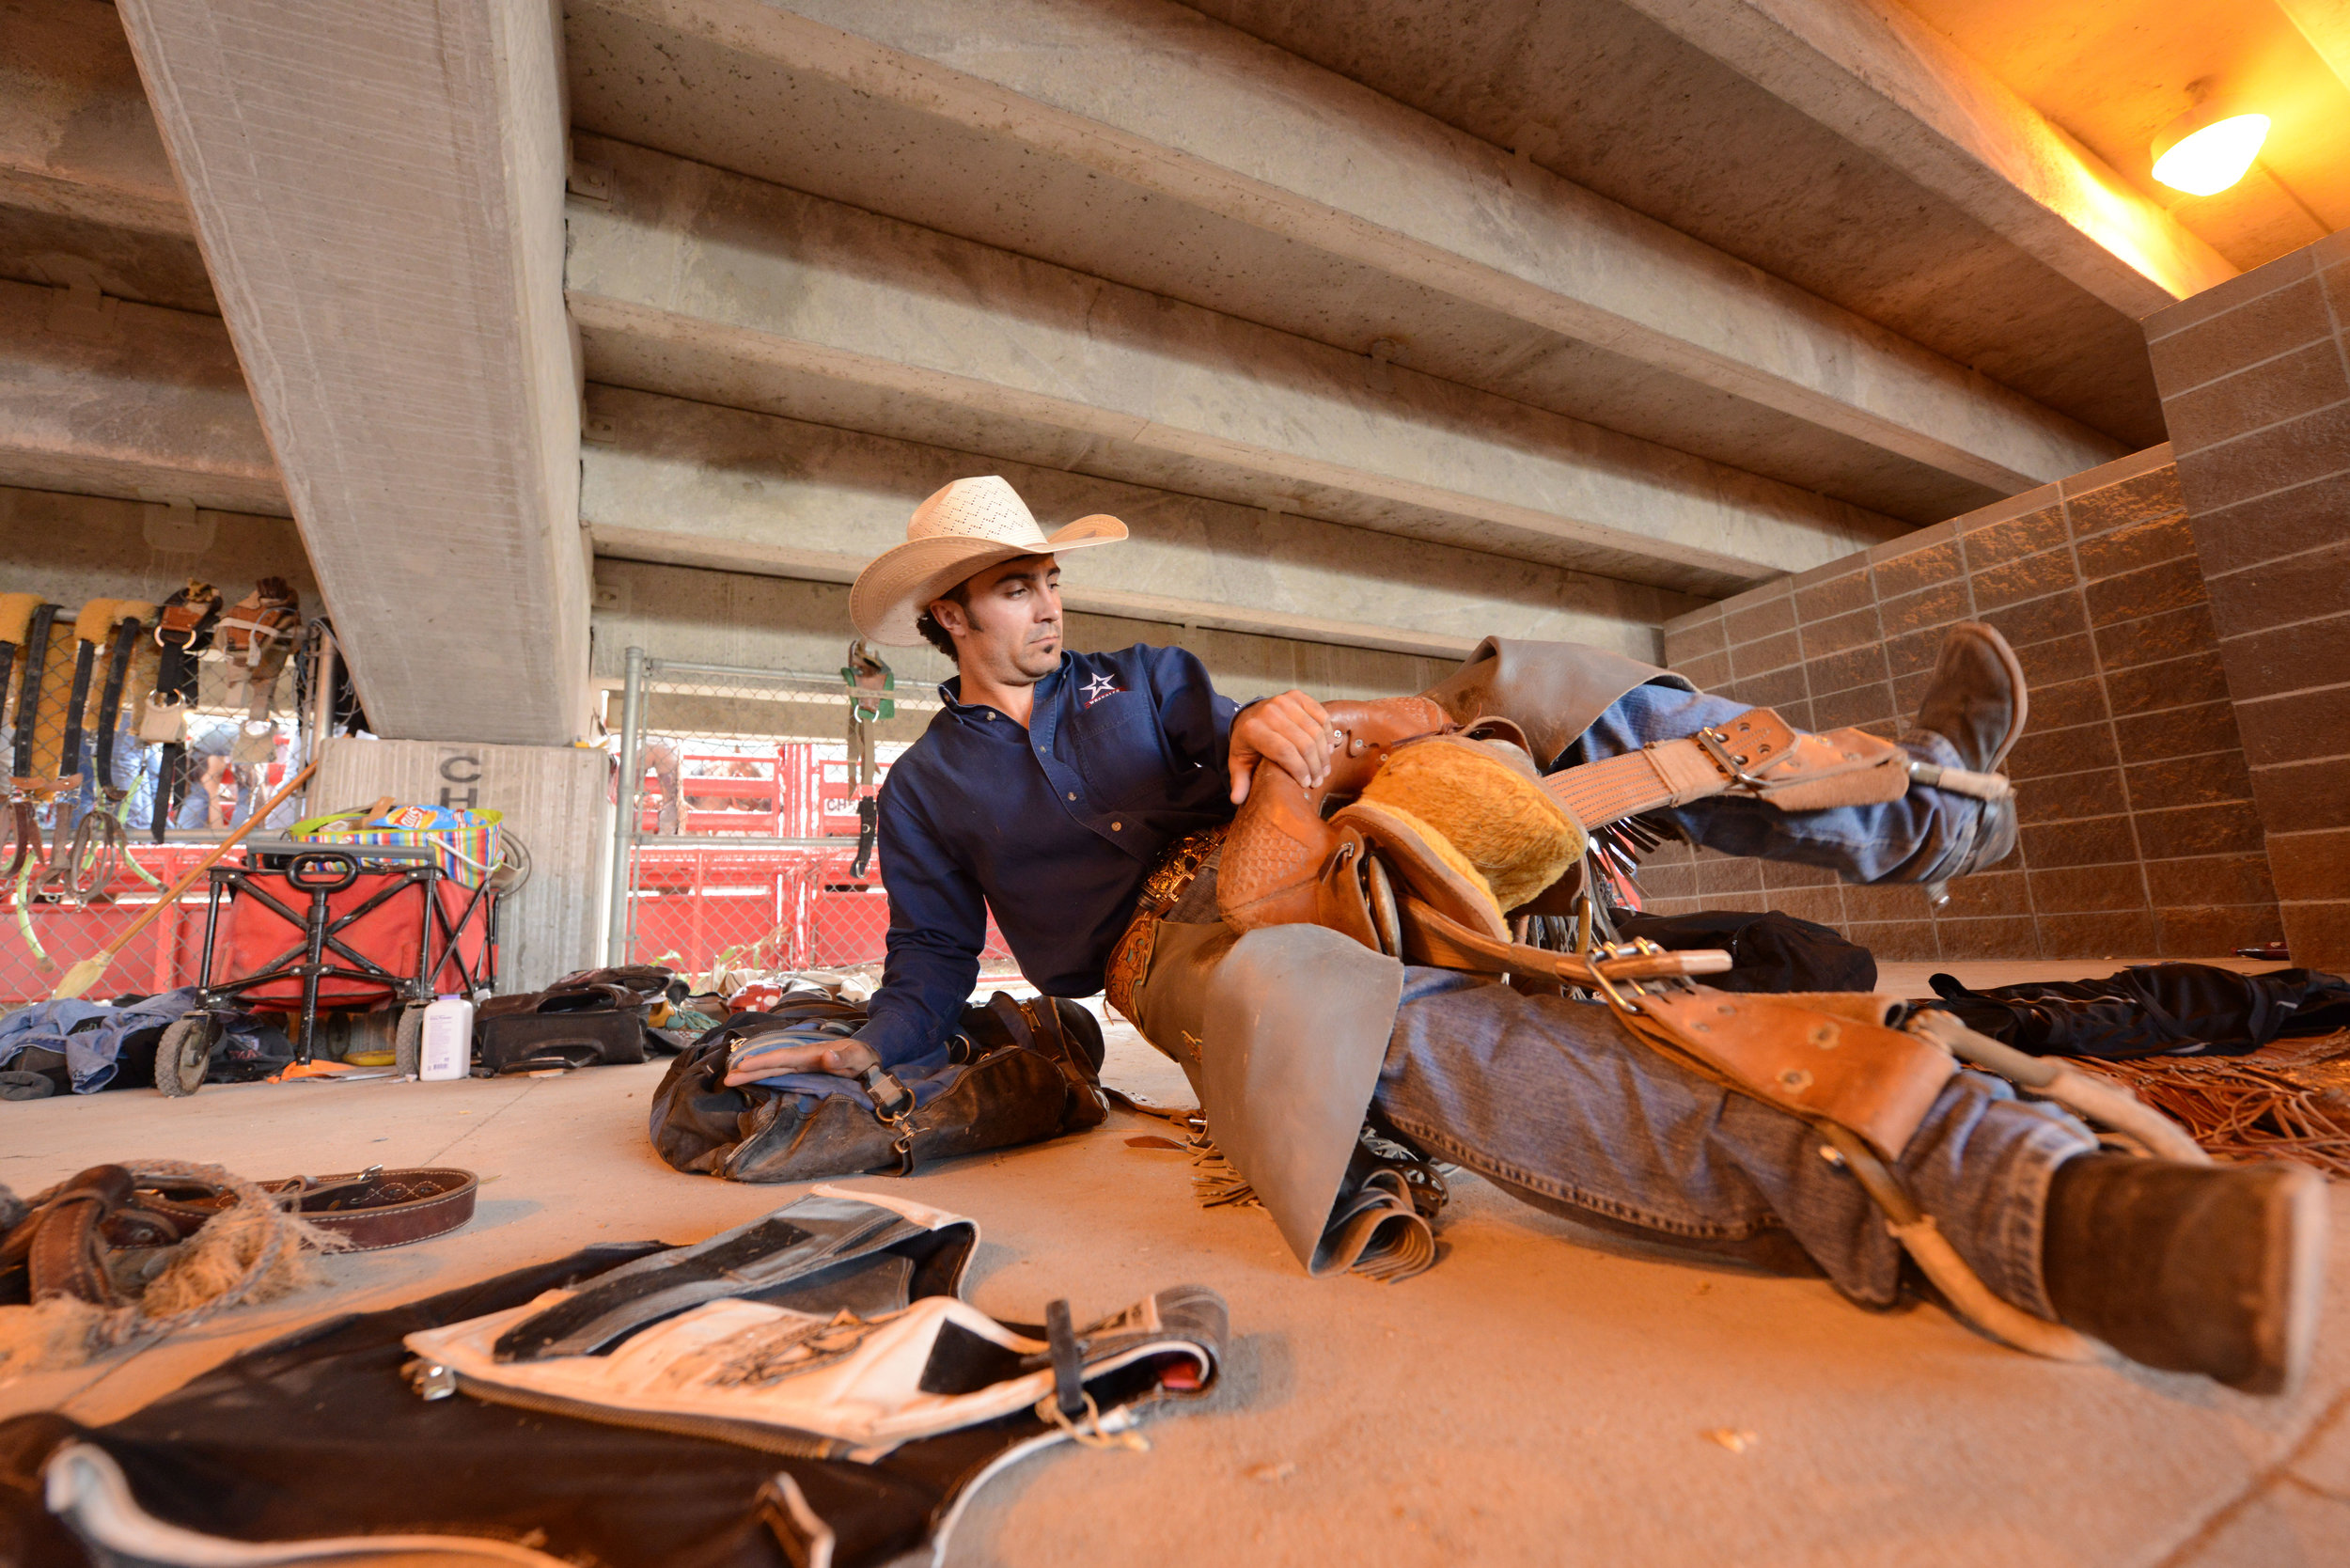 Saddle bronc rider Mitch Pollack, from Twin Falls, Idaho, prepares for his event behind the bucking chutes during the 6th performance at the 122nd Cheyenne Frontier Days Rodeo at Frontier Park in Cheyenne, Wyoming Wednesday, July 25, 2018.